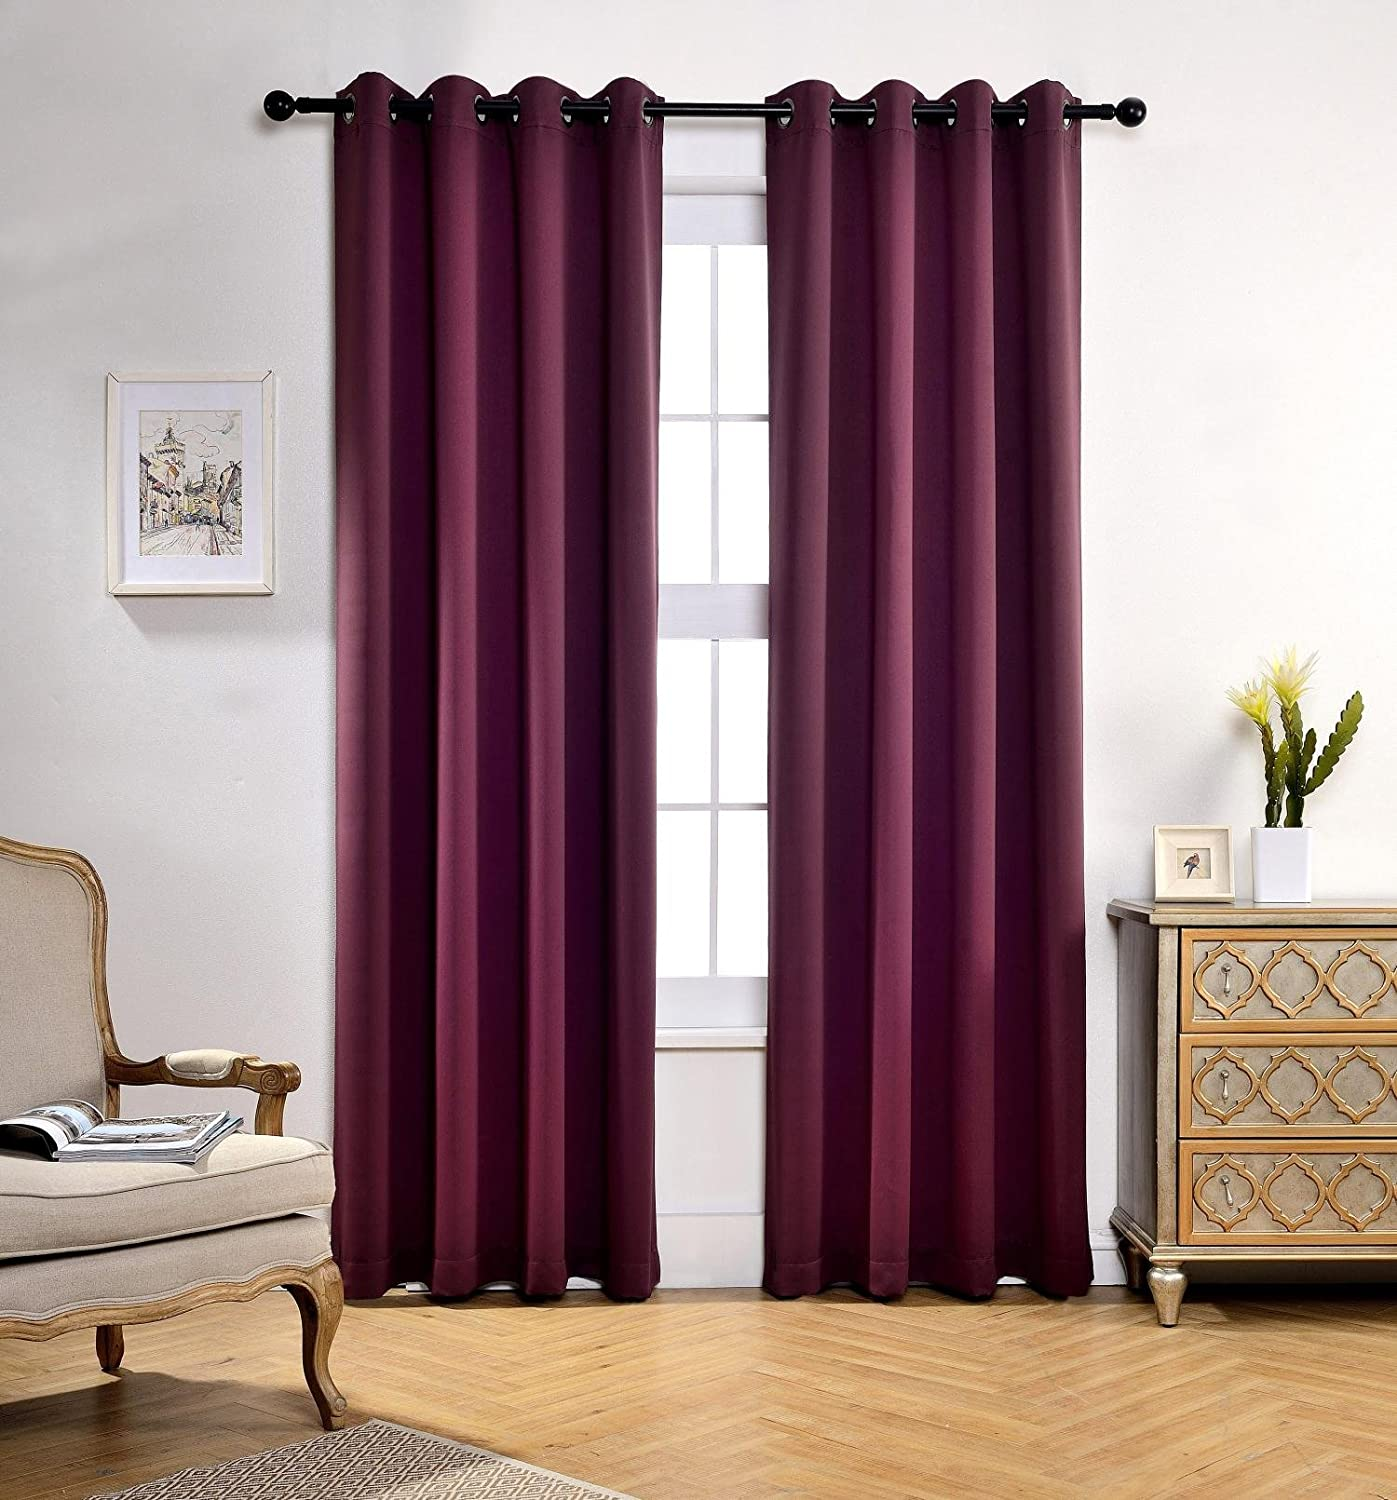 Blackout Window Curtain Panels with 2 Tie Backs, Aubergine